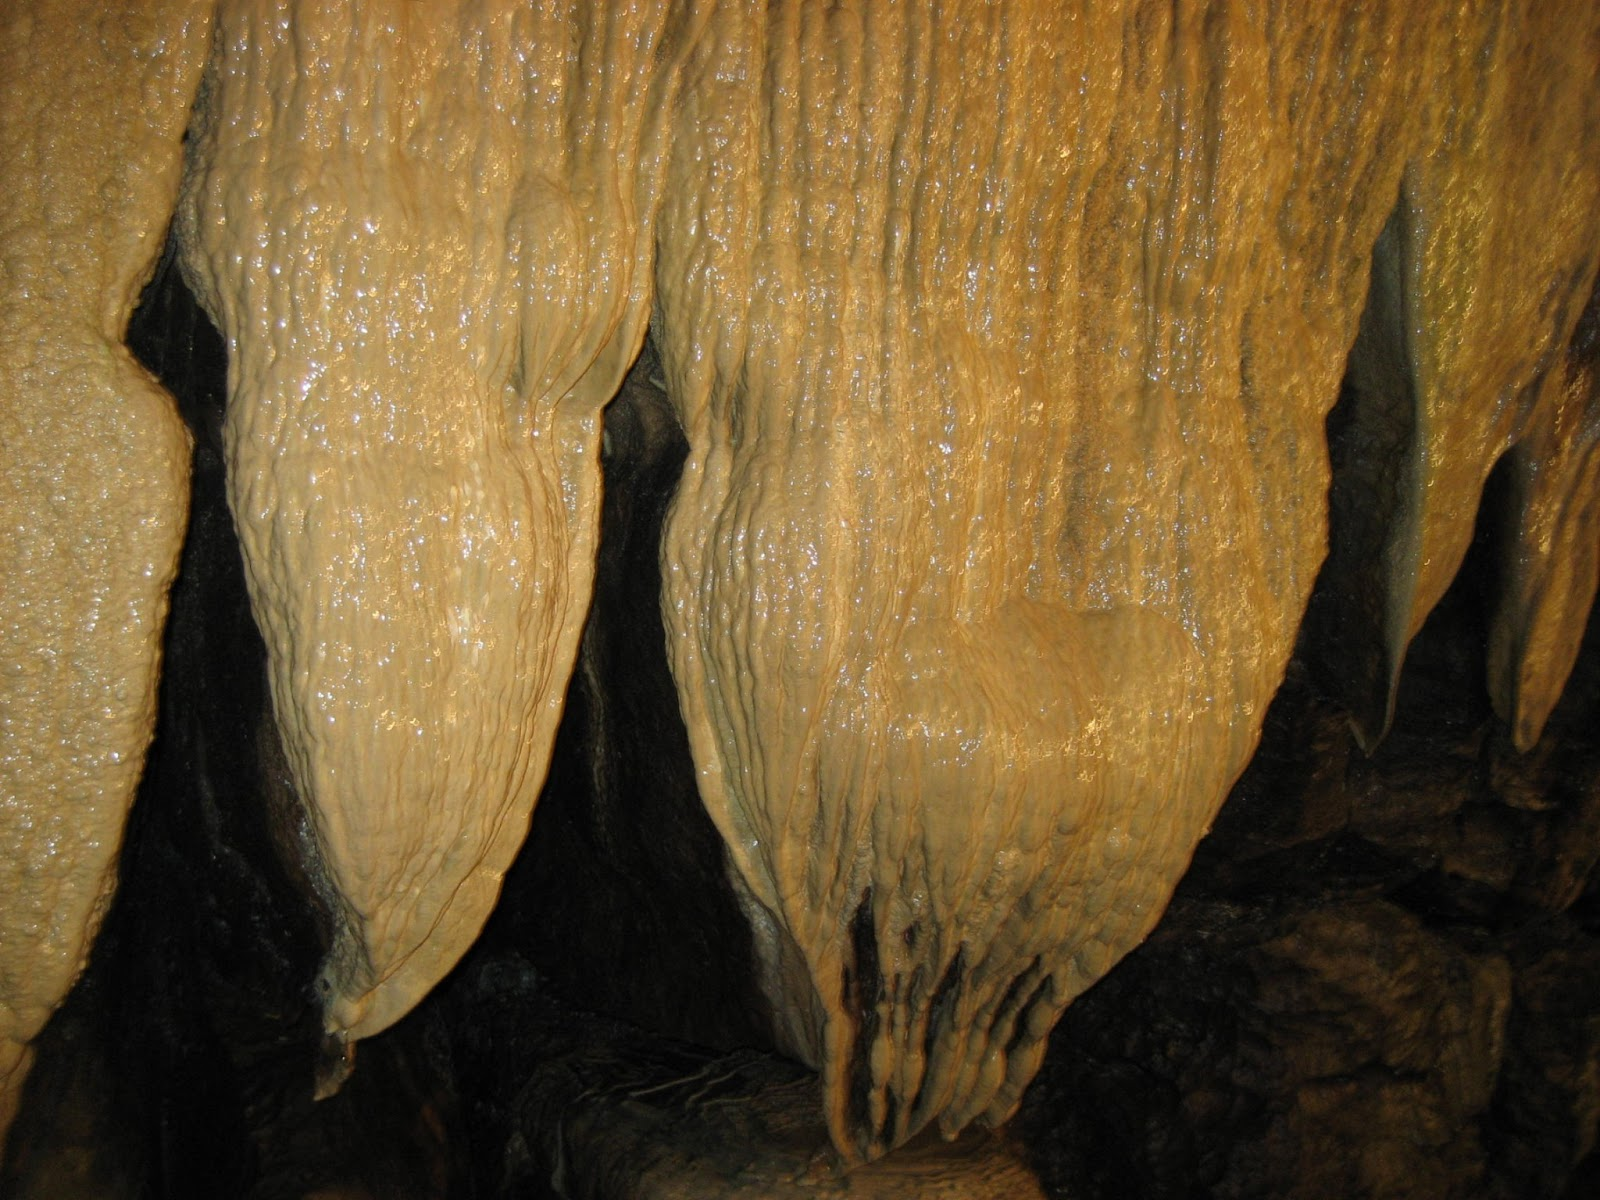 The Curtain range in Ingleborough Cave. Stephen Oldfield